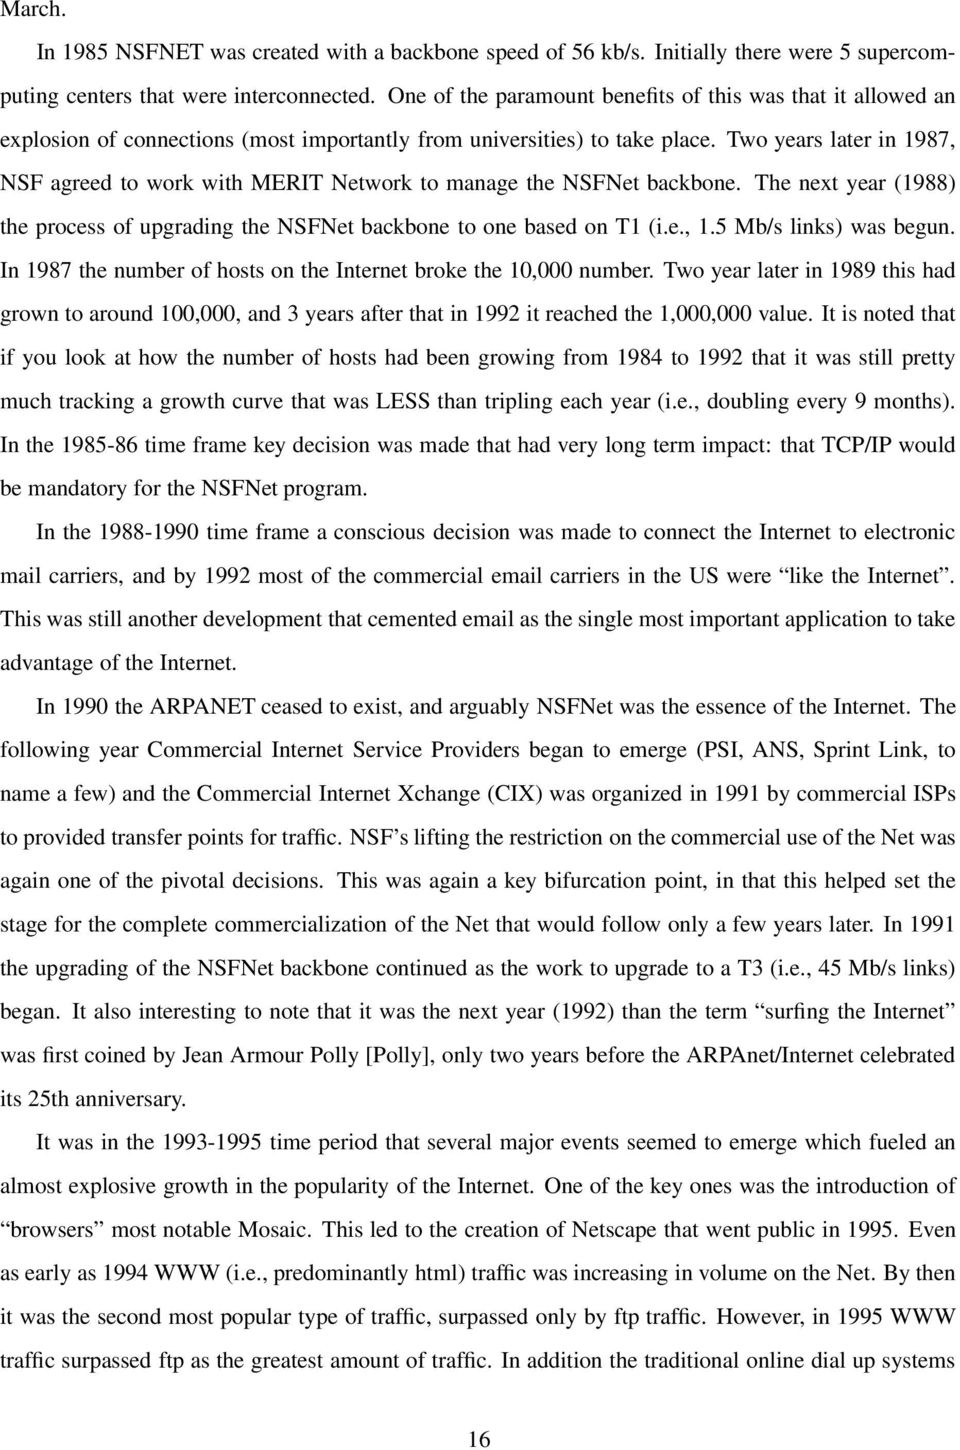 Two years later in 1987, NSF agreed to work with MERIT Network to manage the NSFNet backbone. The next year (1988) the process of upgrading the NSFNet backbone to one based on T1 (i.e., 1.